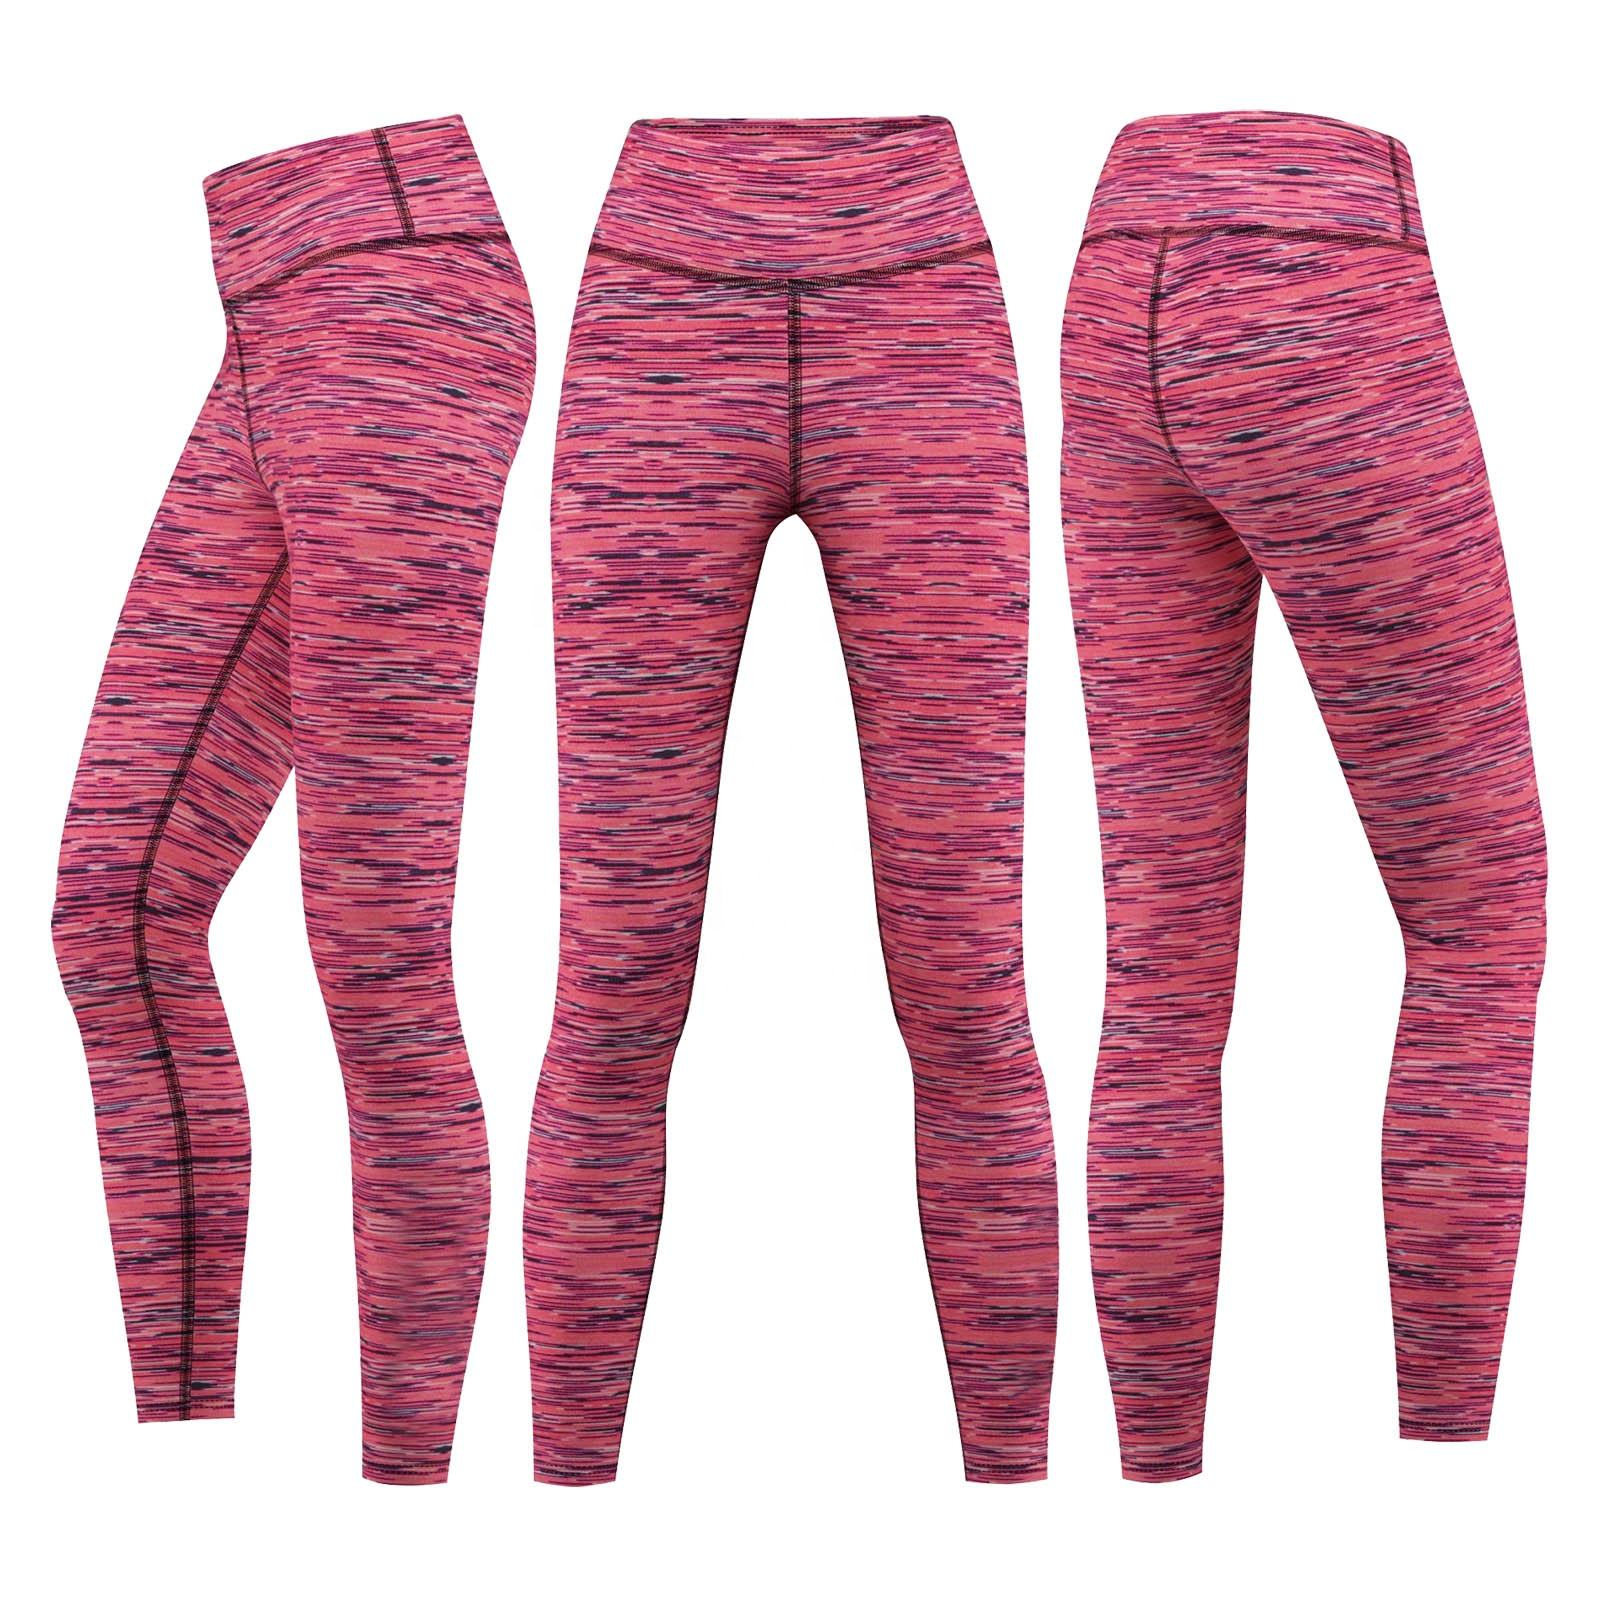 high waist legging for fitness, printed yoga and gym sports leggings, Two tune Melange Legging